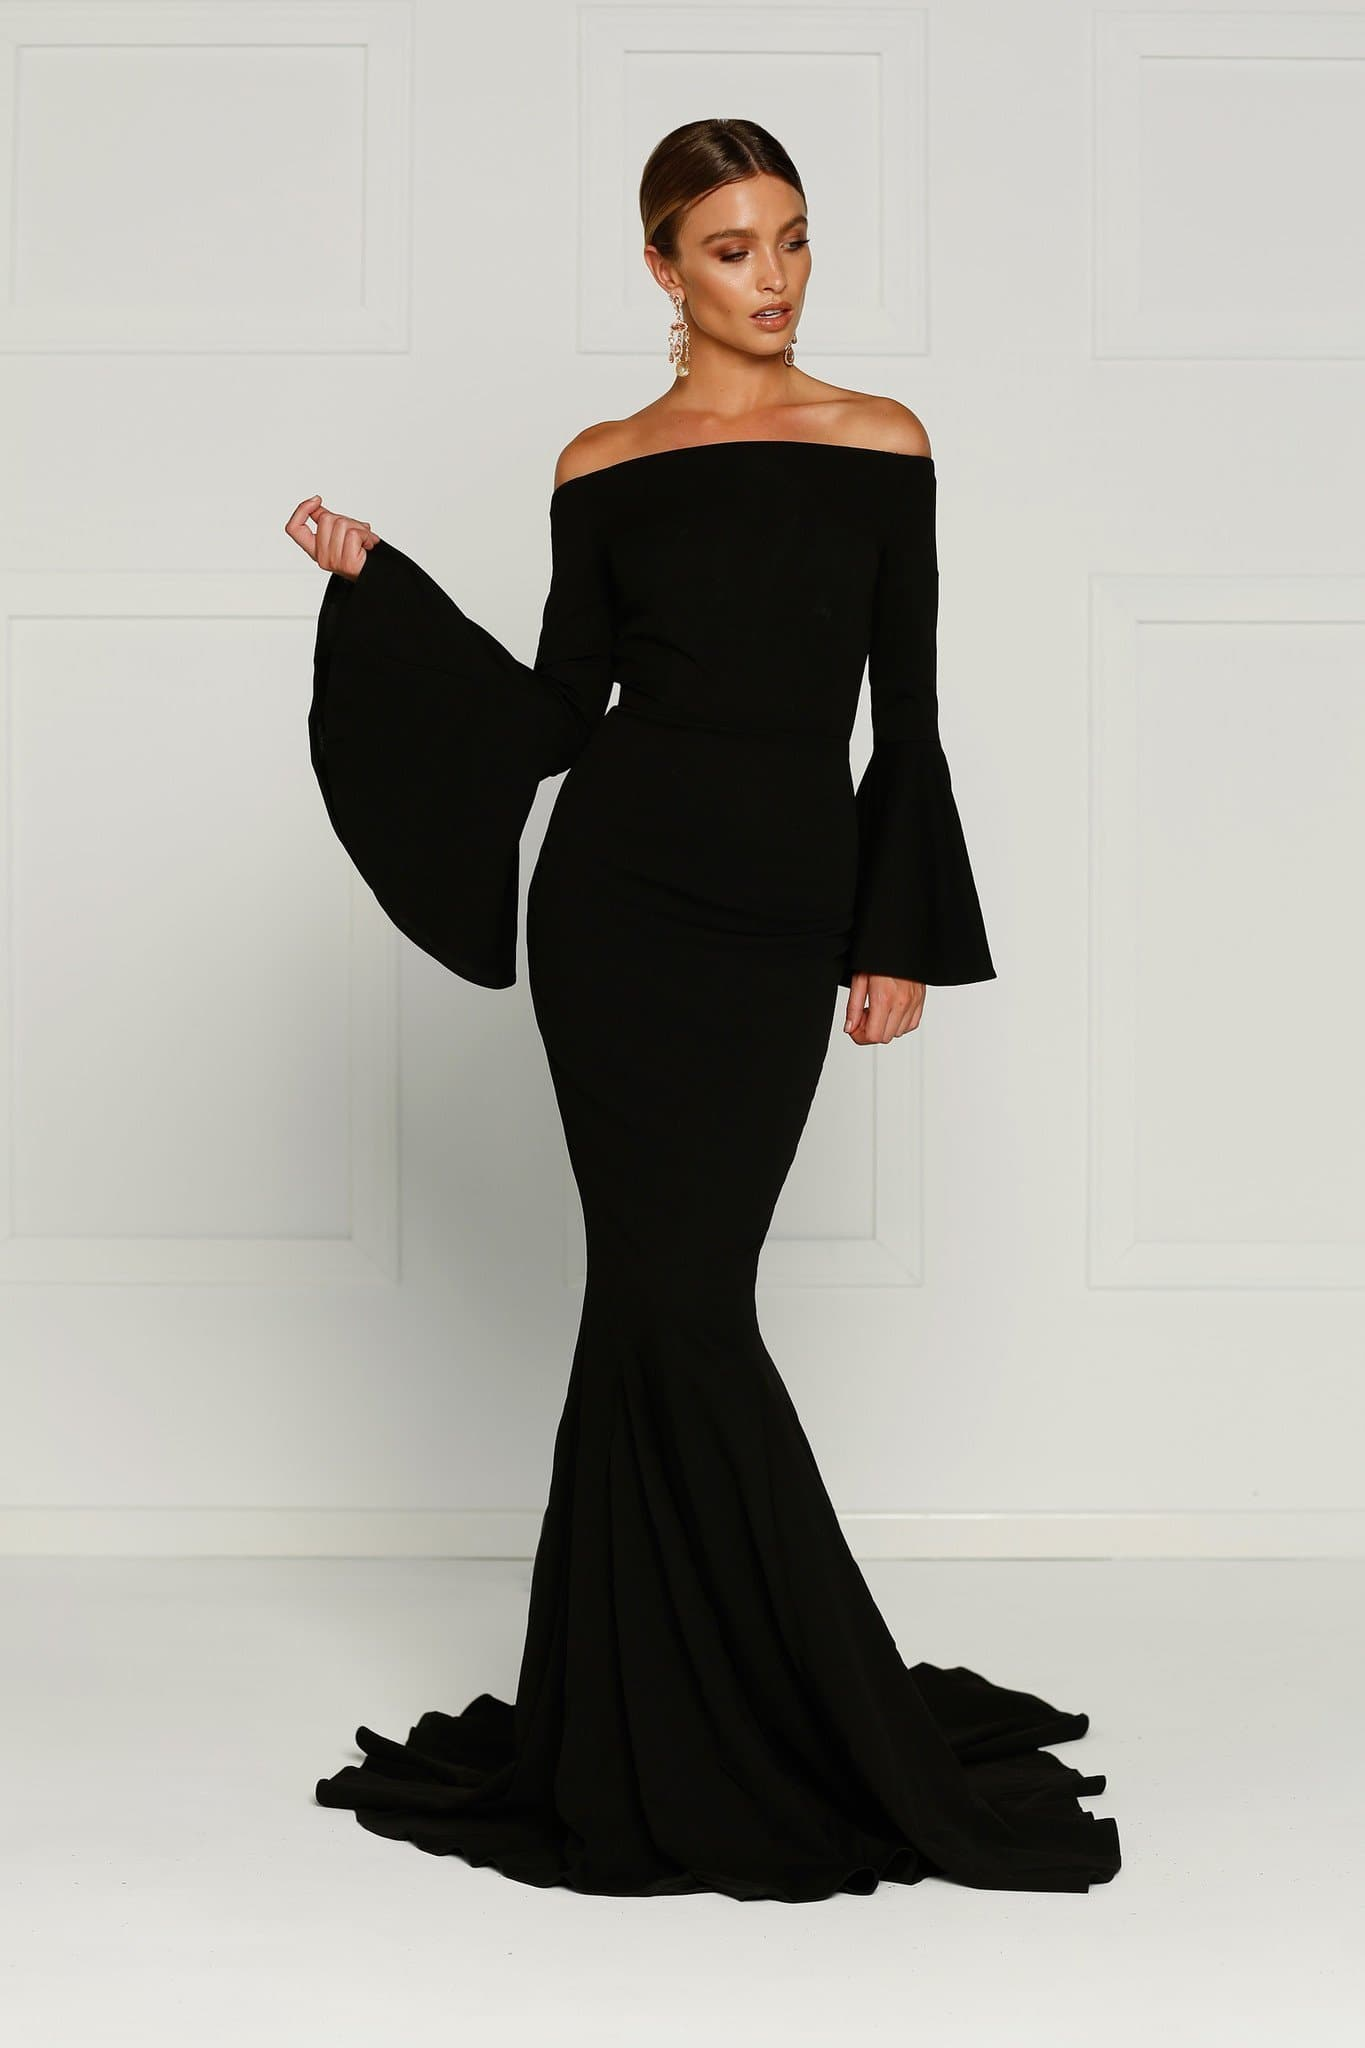 1d0b4c05ff5f Amore - Black Off Shoulder Gown with Long Flare Sleeves – A N Luxe Label